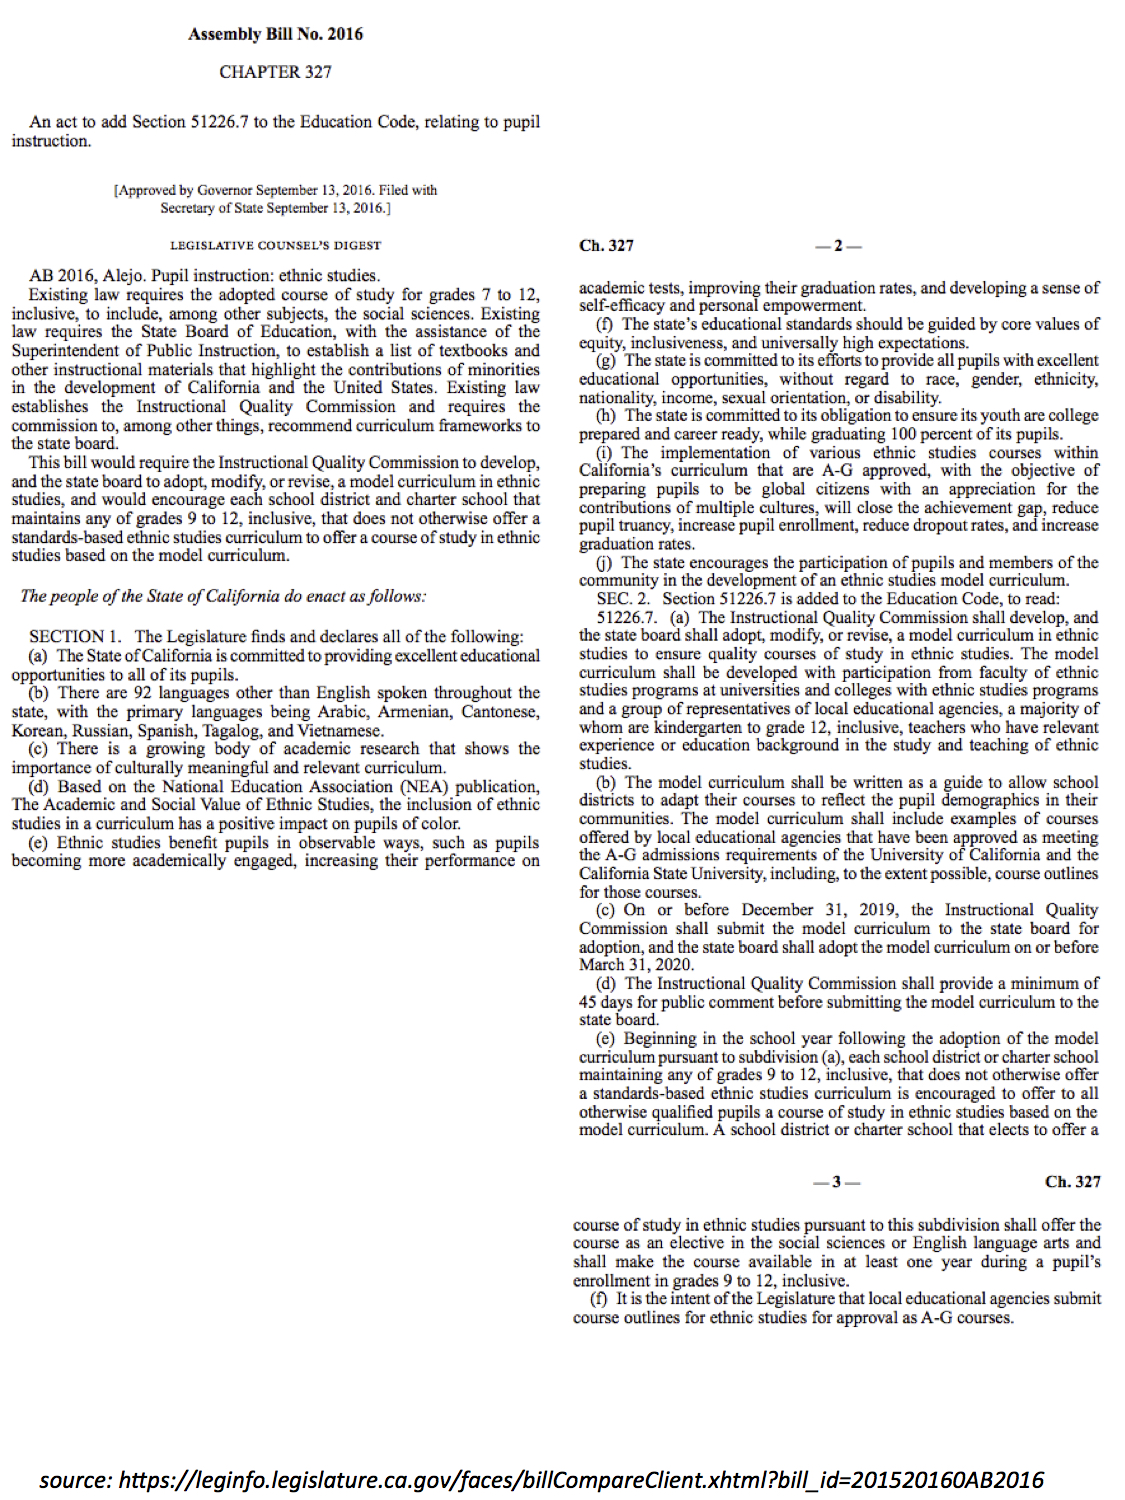 AB_2016_Text_as_signed_into_law_9-13-16.jpg